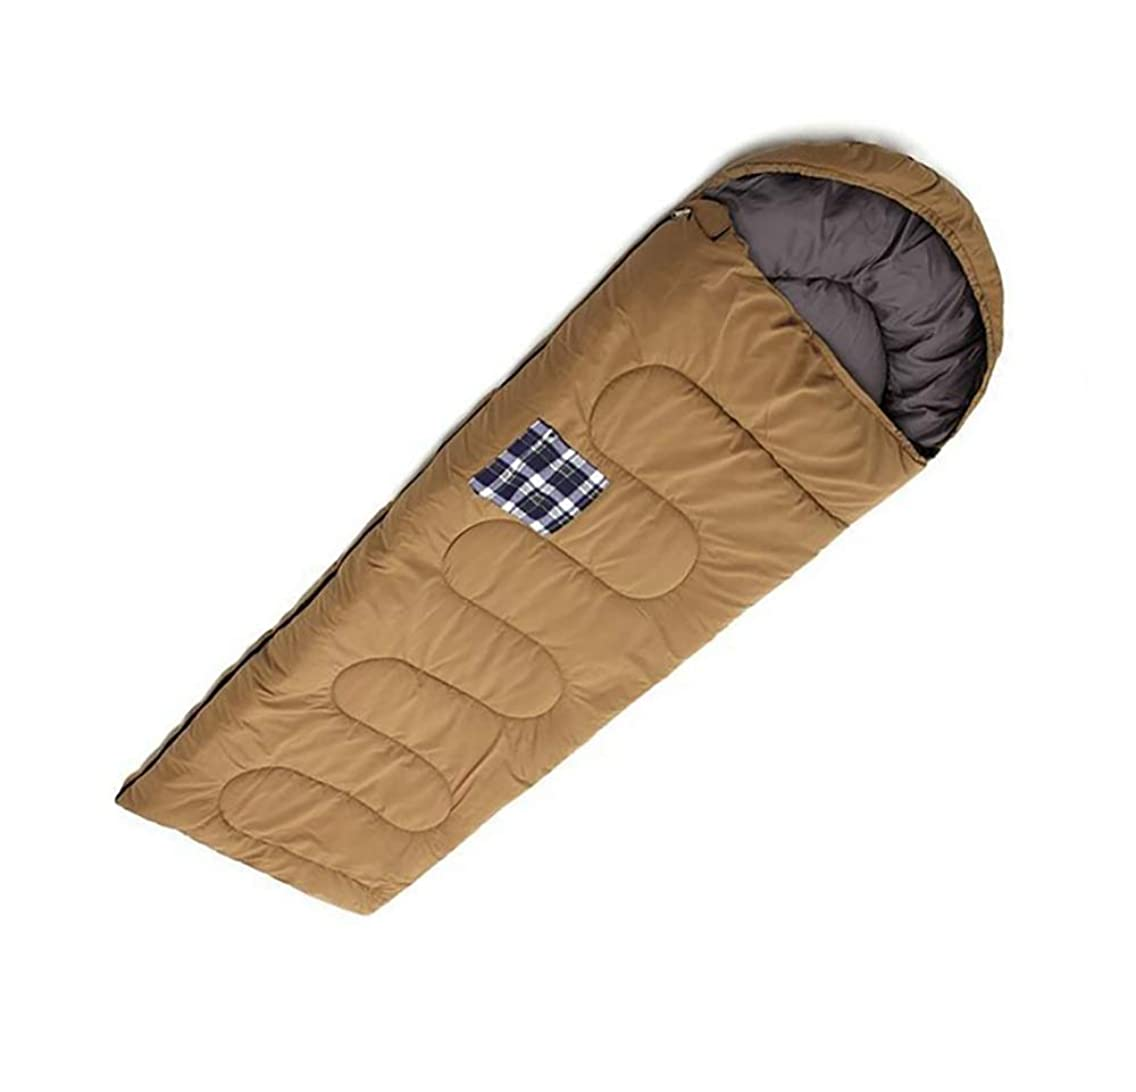 Envelope Sleeping Bag Breathable Rectangular Sleep Sack Waterproof for Outdoor Hiking Camping Trip - Winter